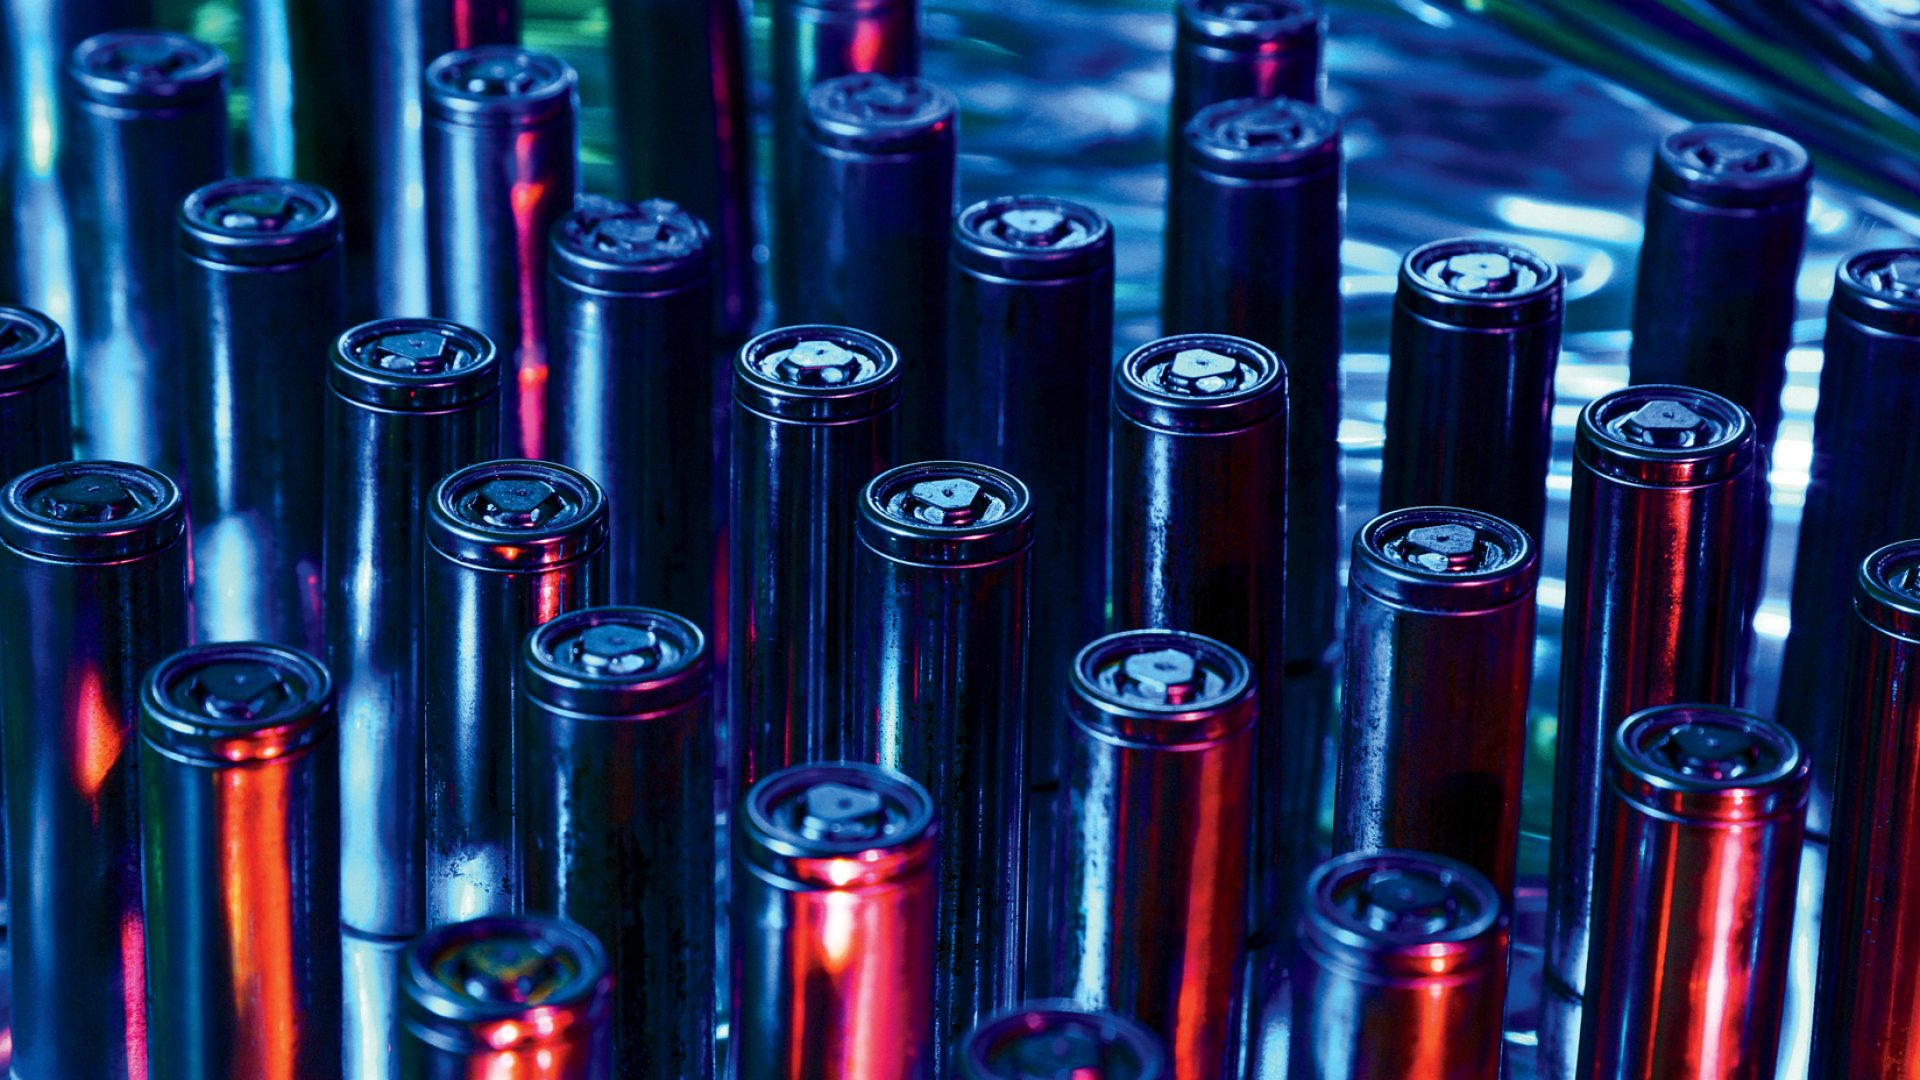 CANNED HEAT: Lithium-ion batteries were created in the 1970s, long before smartphones or Teslas, yet today they power these devices and many other parts of our modern lives.